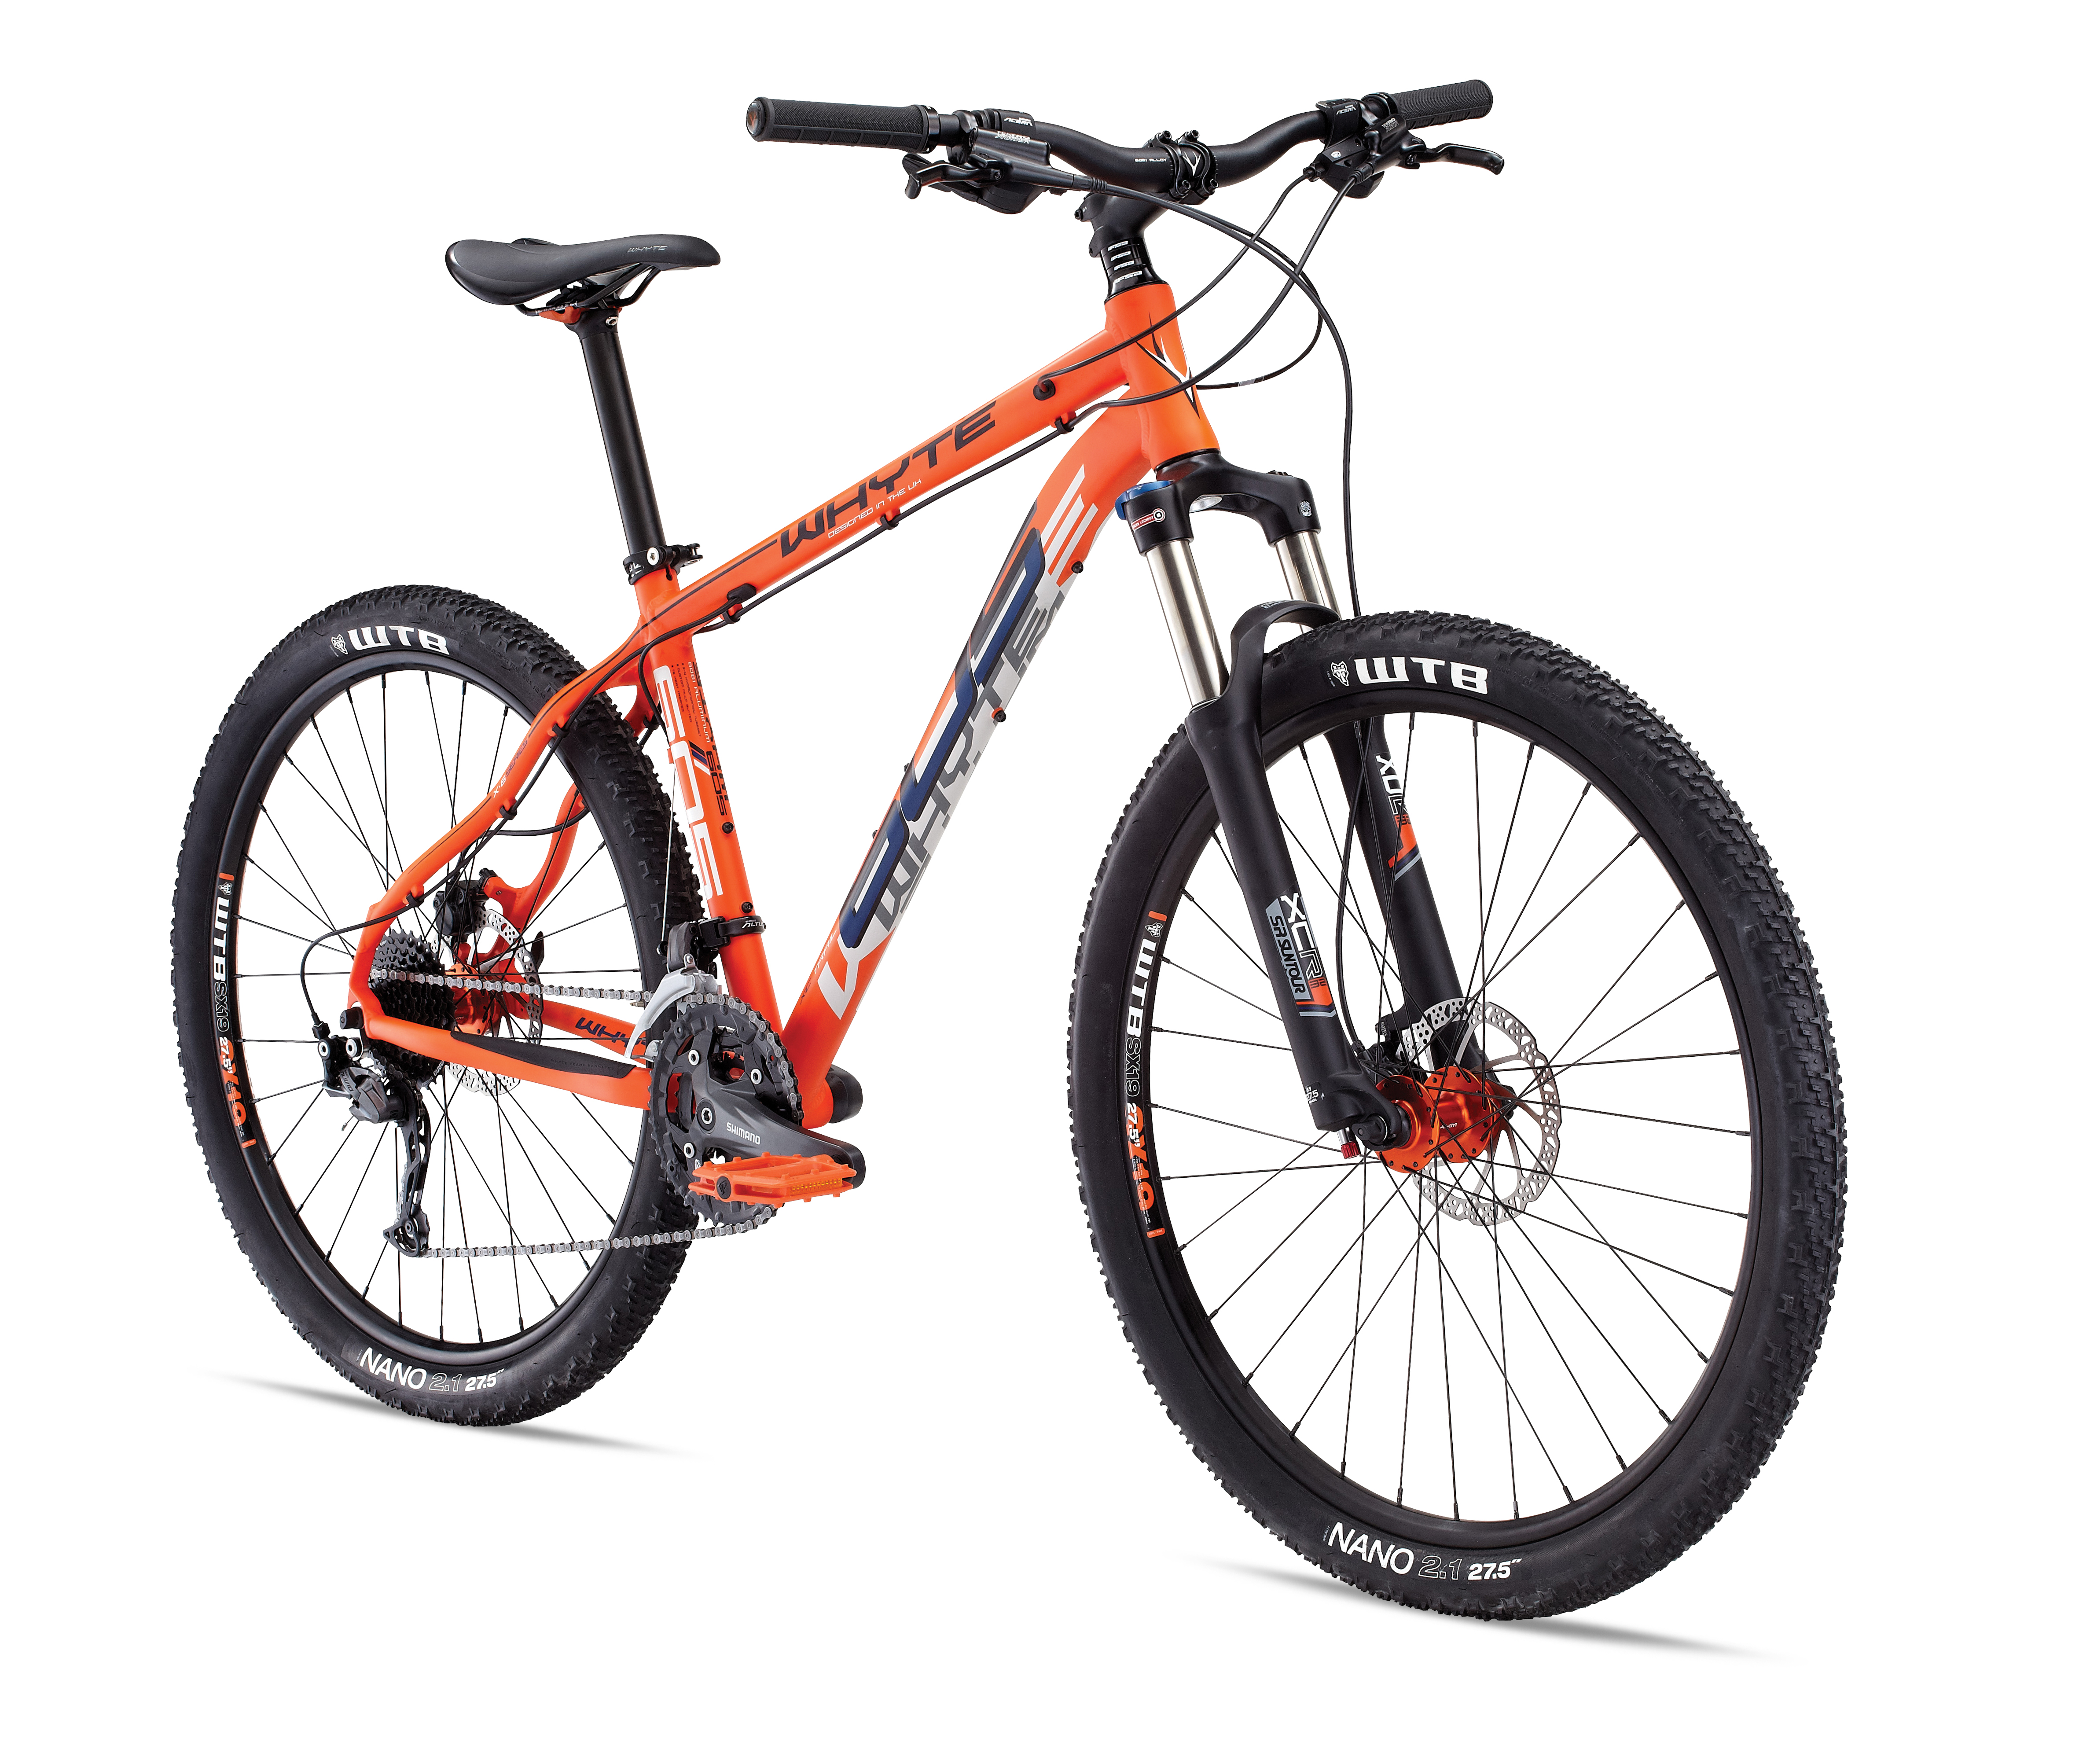 2016 Whyte 605 650B Apple Cross Country Mountain Bike £559 20